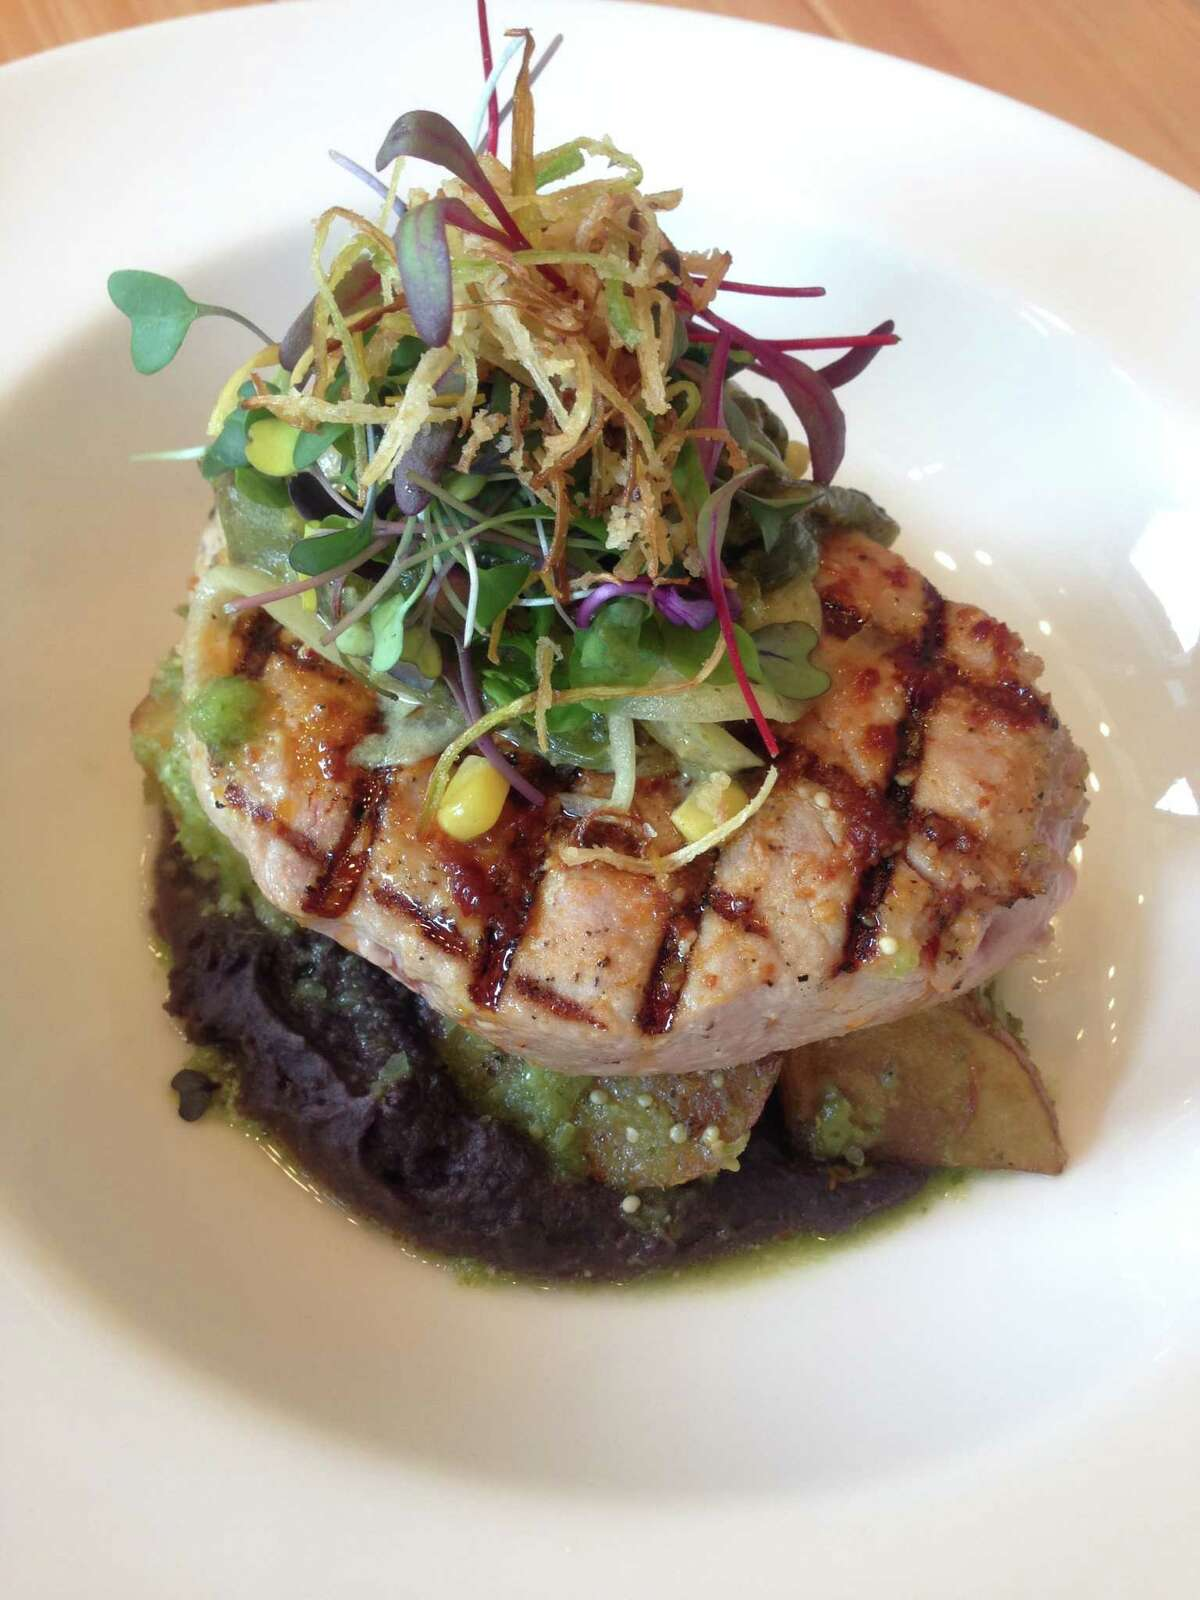 Grilled tuna steak served with refried black beans, potatoes in green sauce and poblano pepper